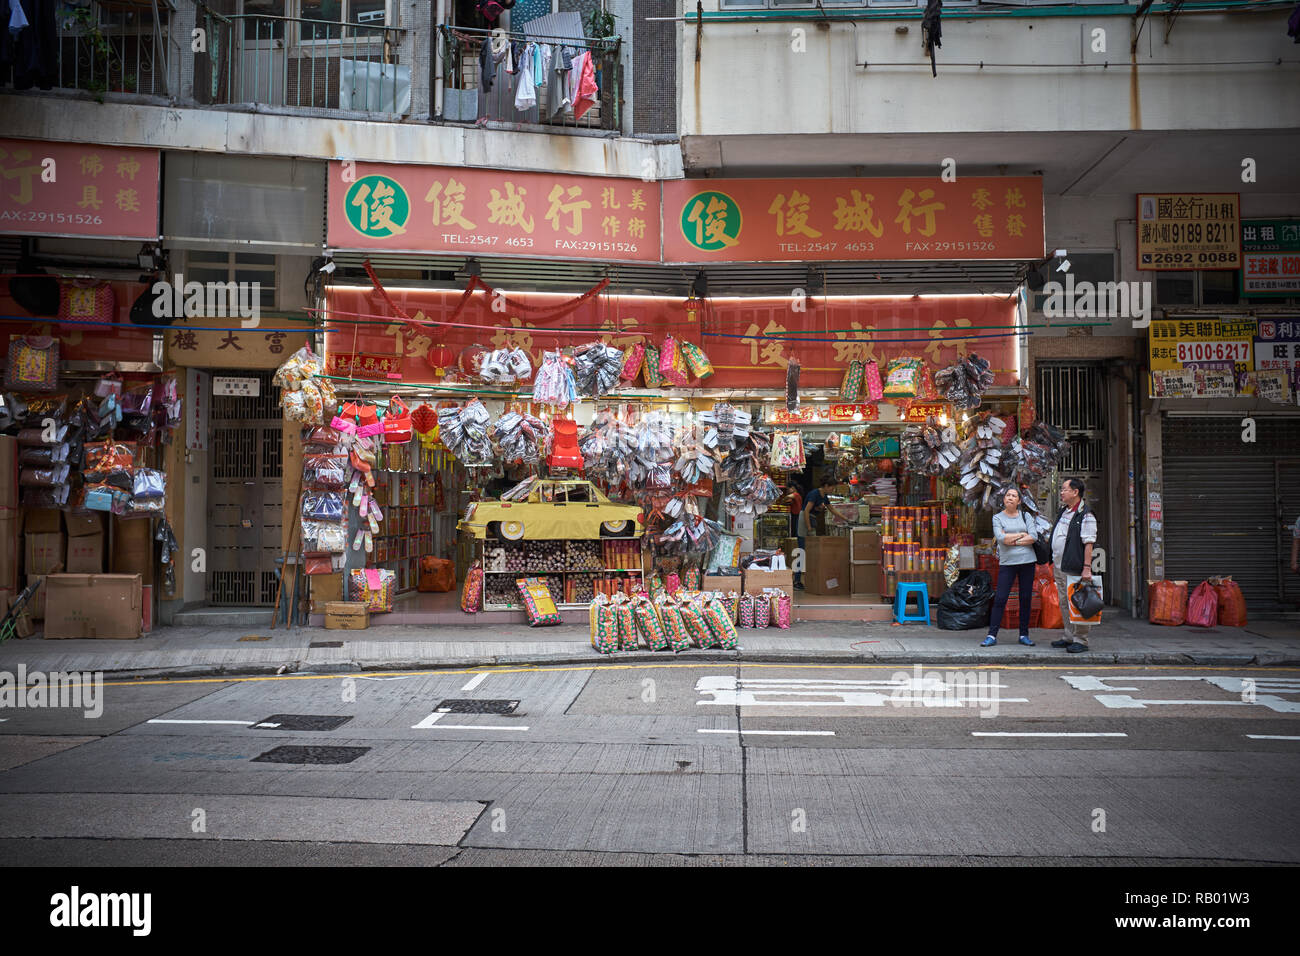 Joss Paper Store for Chinese Funerals, Hong Kong - Stock Image